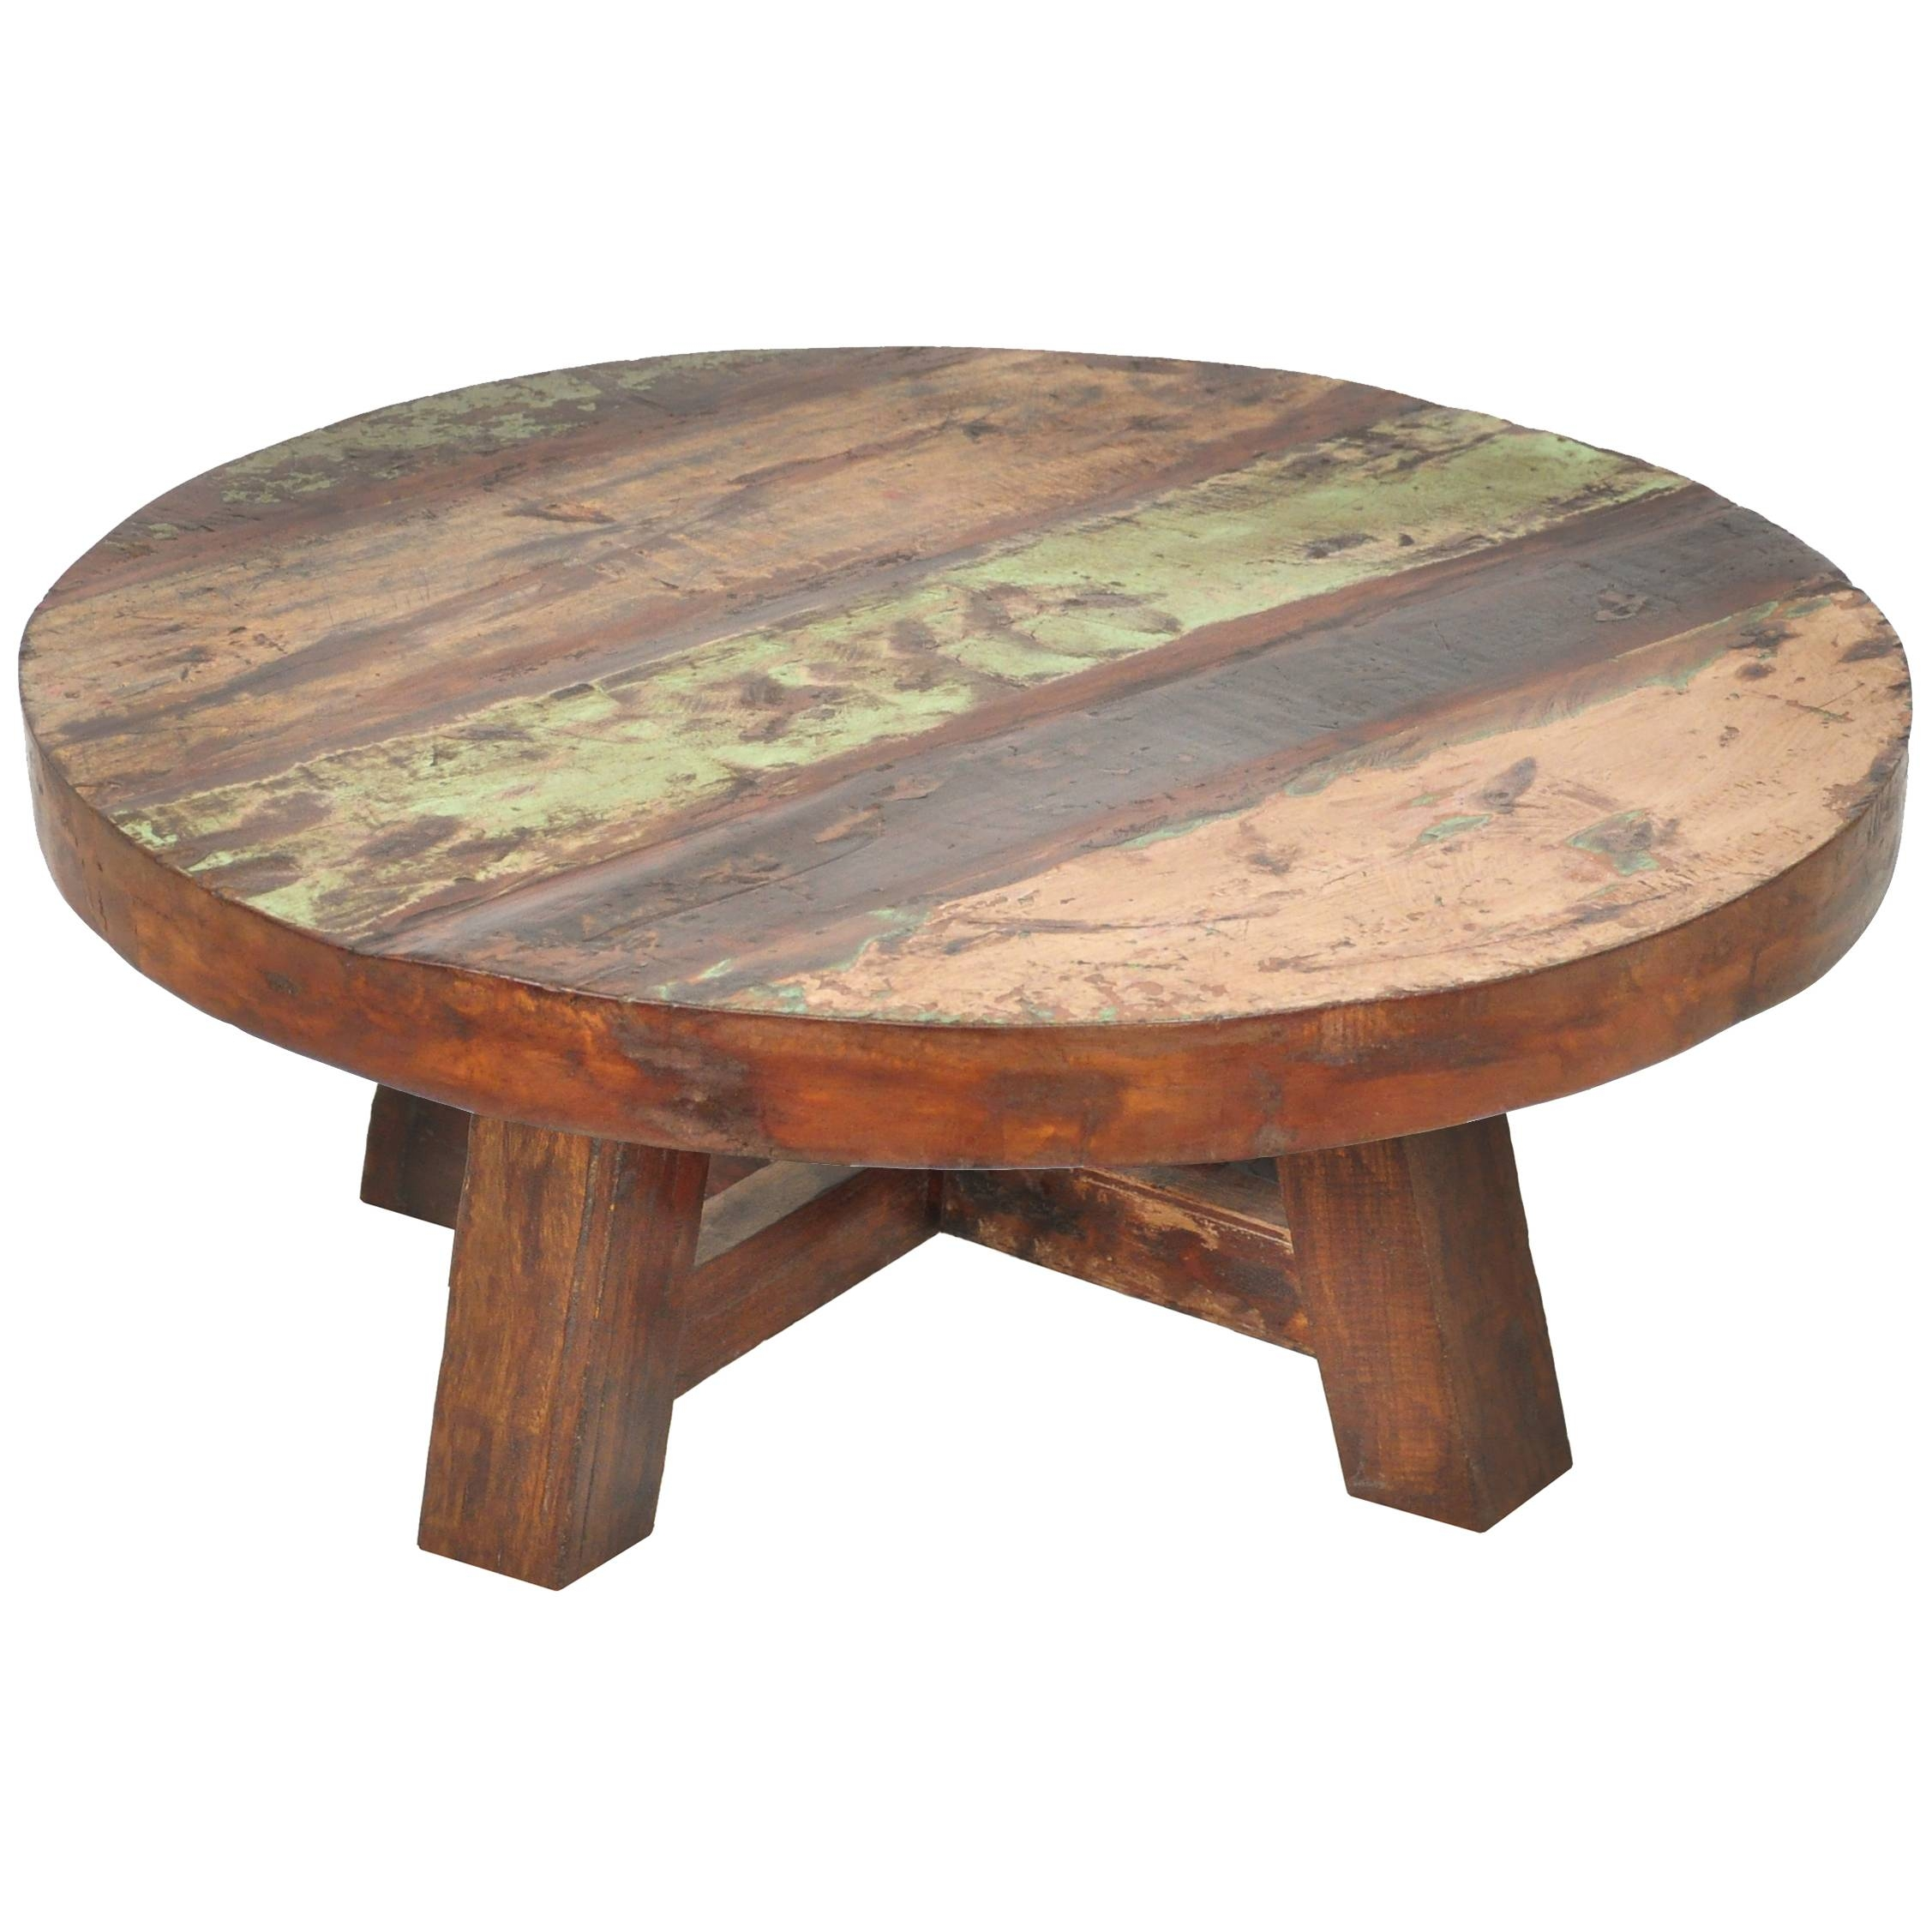 Coffee Table : Reclaimed Wood Round Coffee Table As Ikea Coffee with regard to Low Square Wooden Coffee Tables (Image 2 of 30)